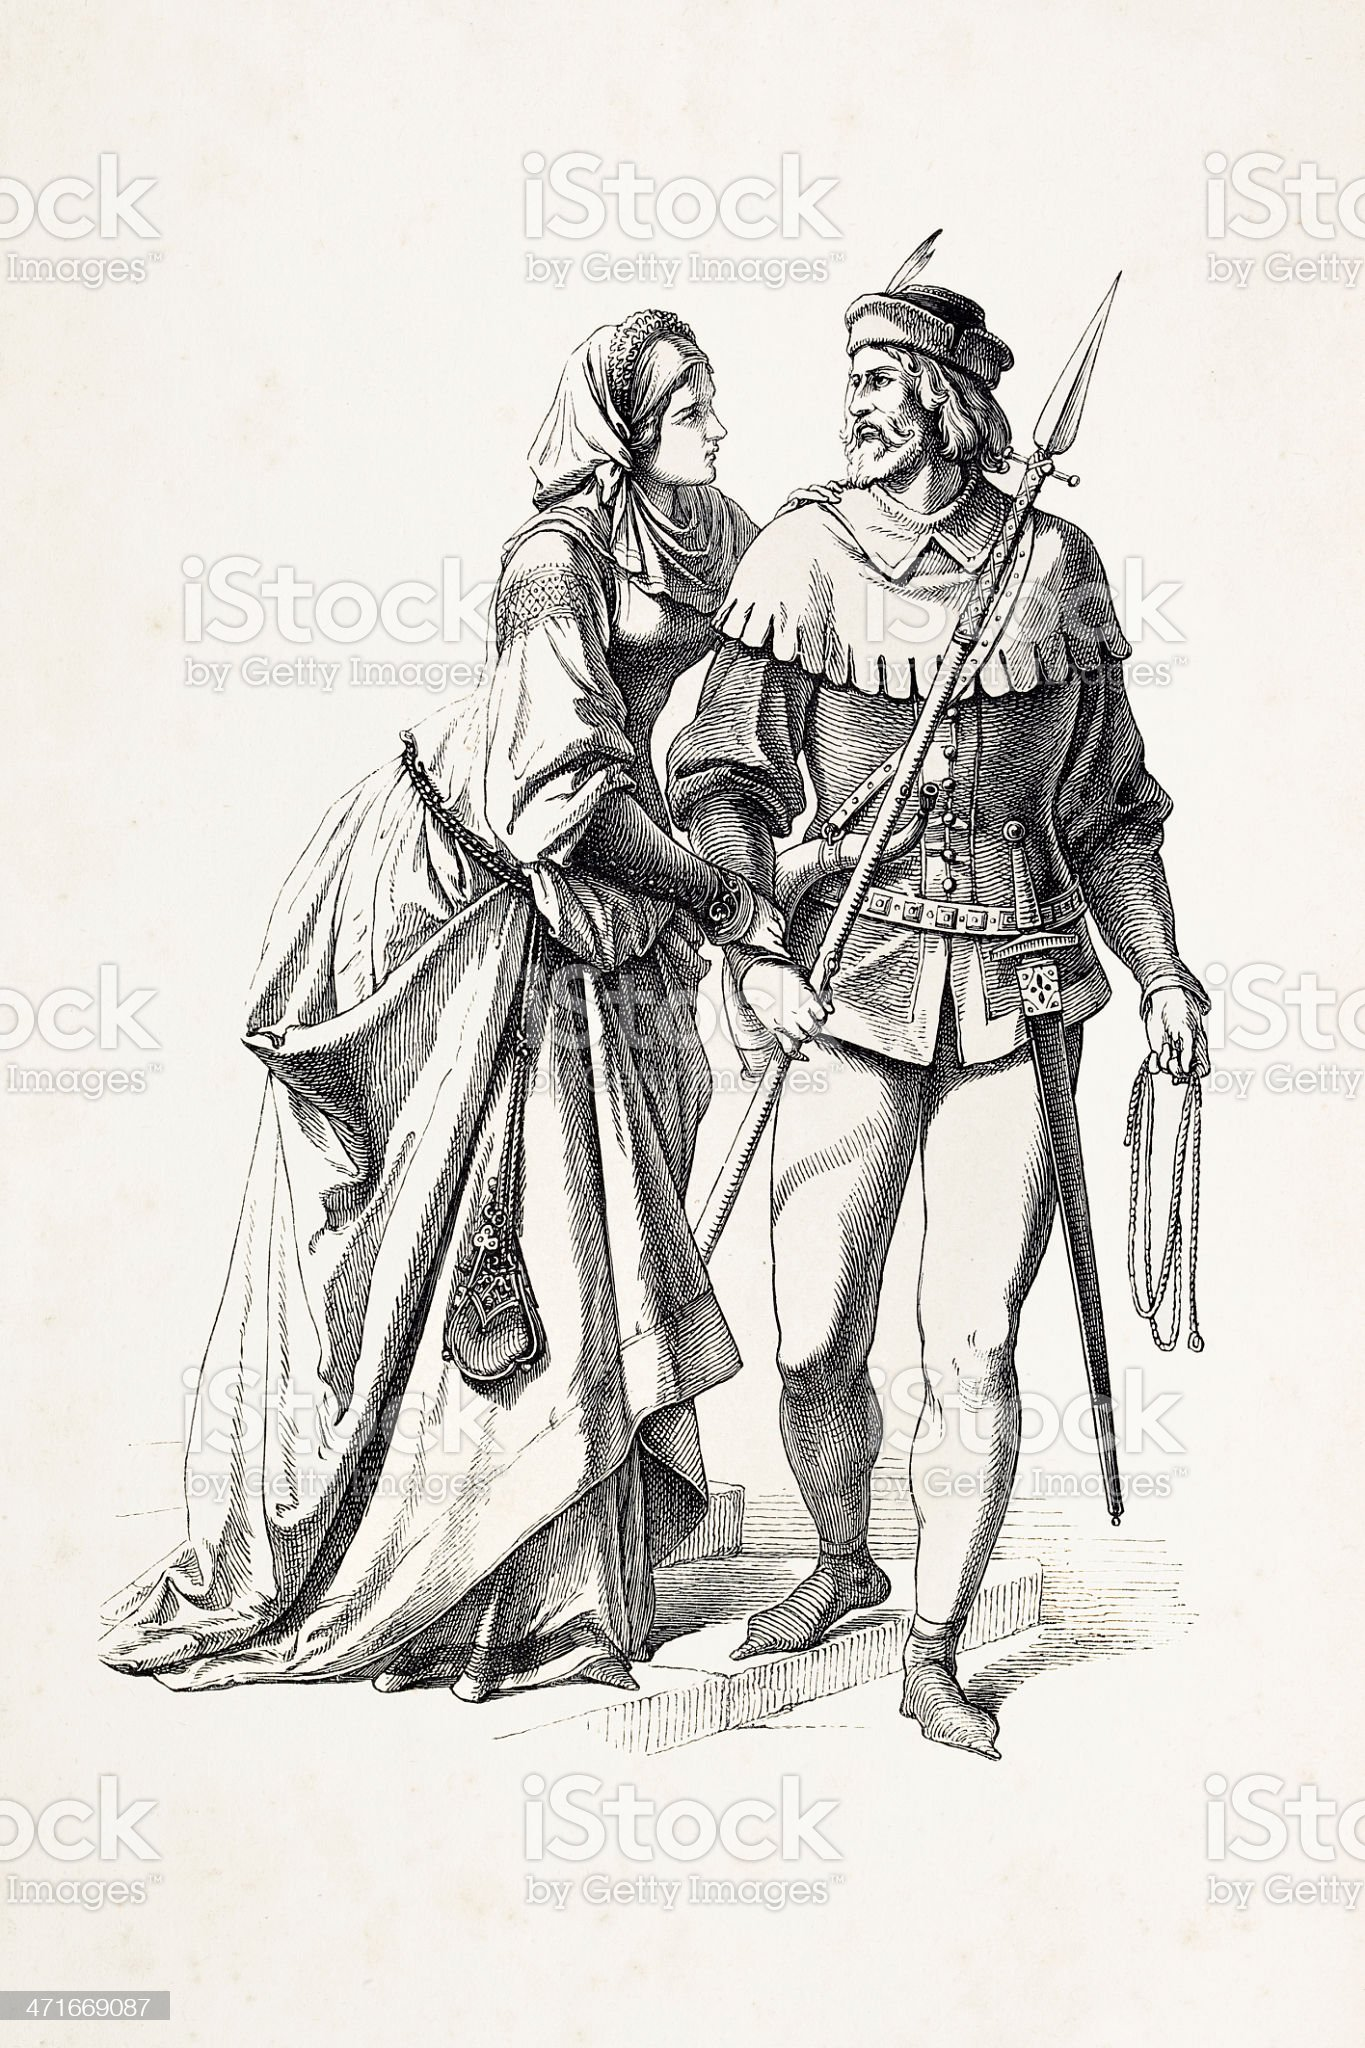 German couple in traditional clothing from 14th century royalty-free stock vector art